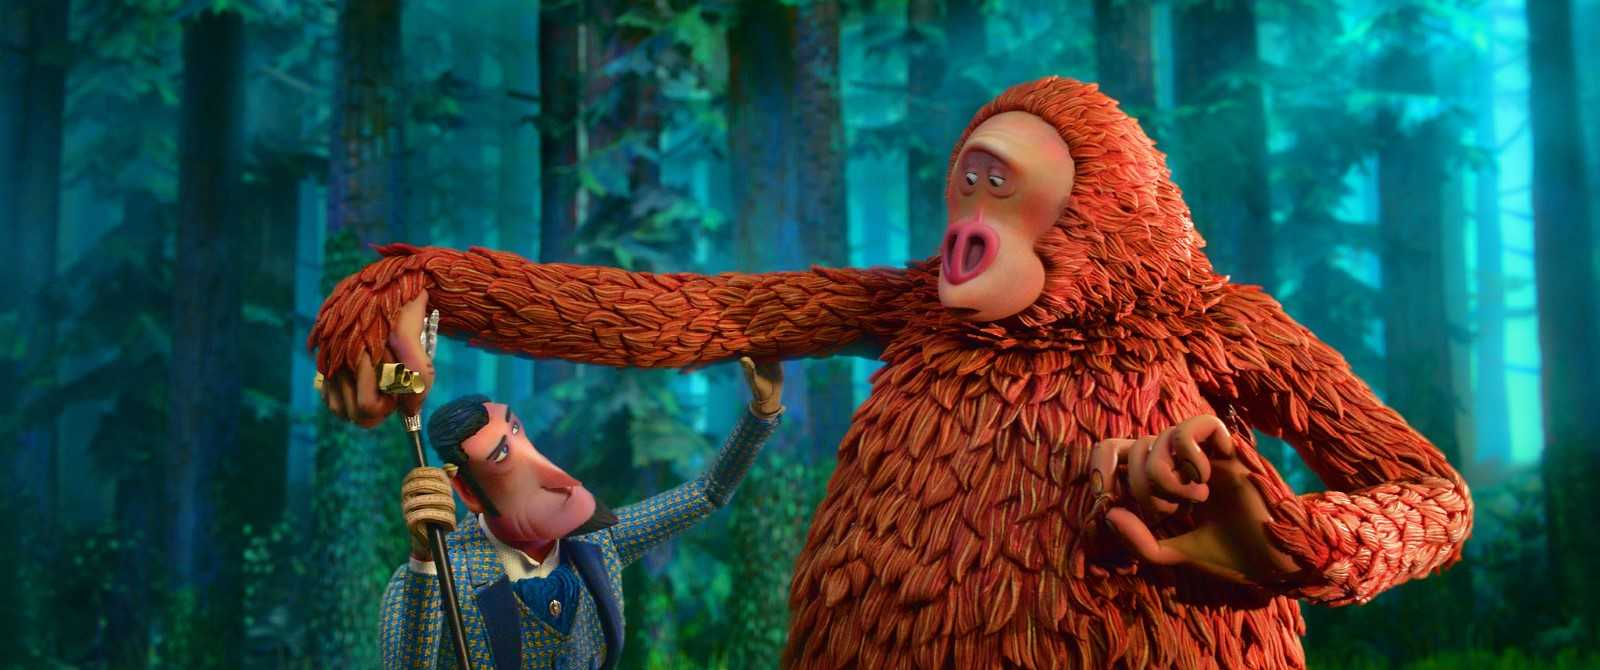 'Missing Link' Review: Another Stop-Motion Miracle From Laika